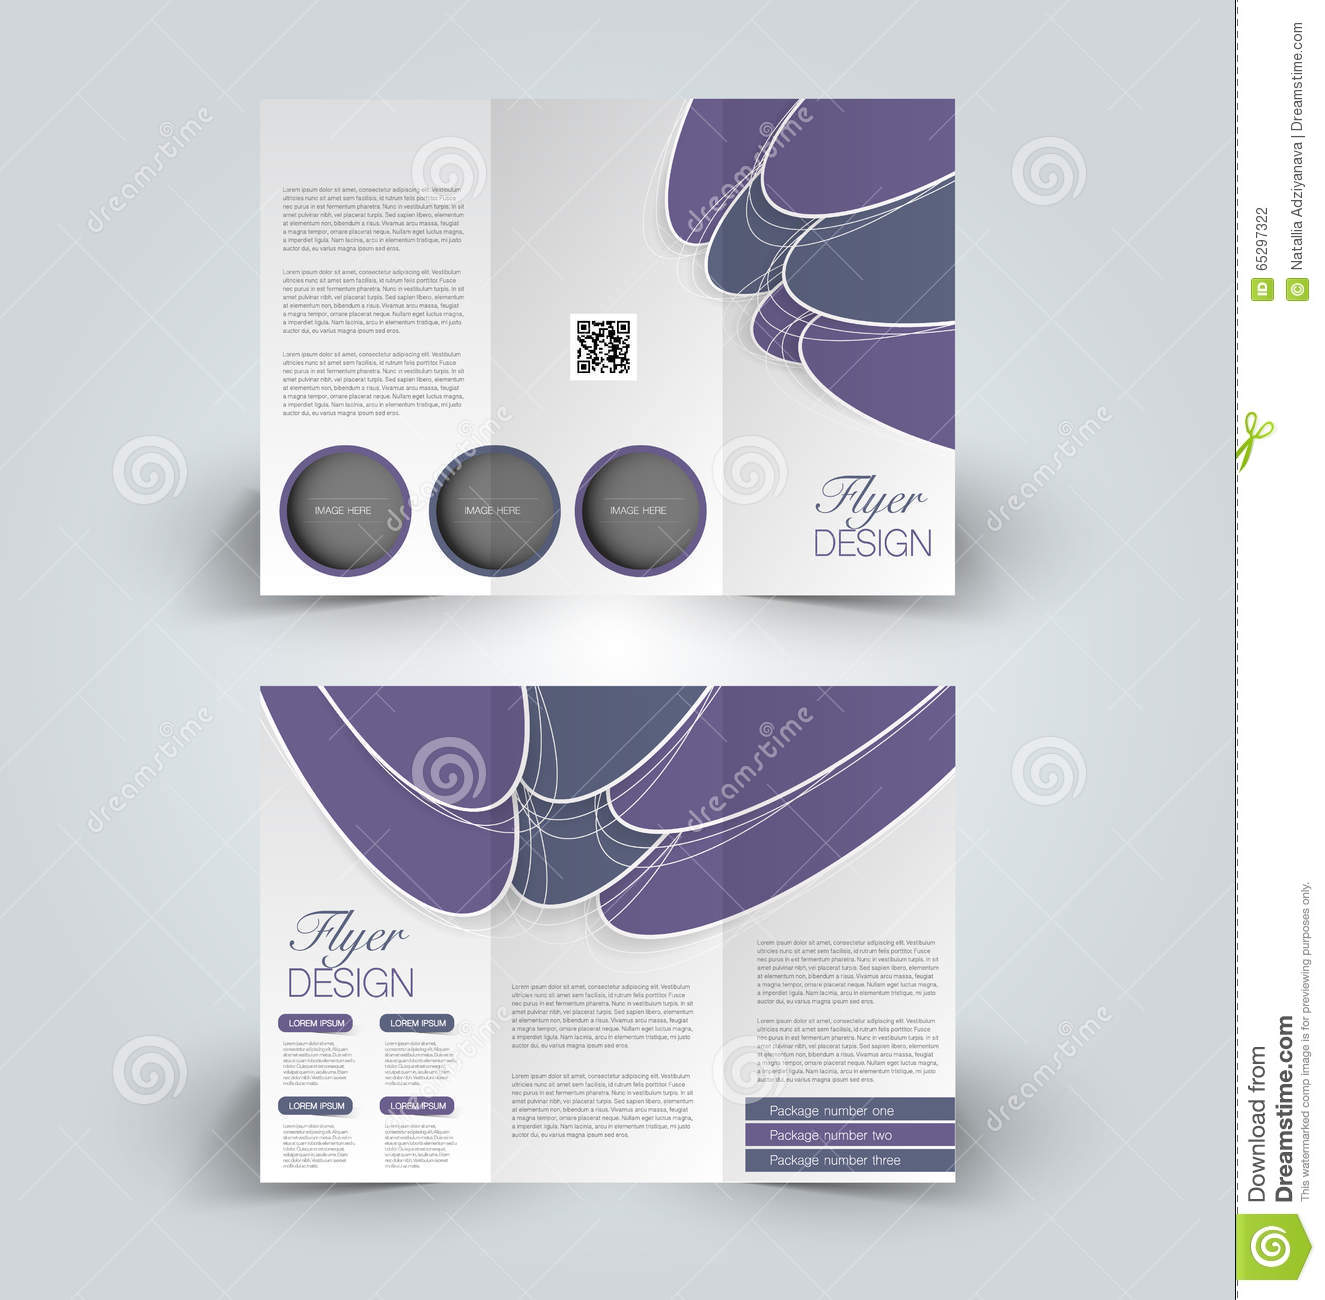 brochure mock up design template for business education brochure mock up design template for business education advertisement trifold booklet